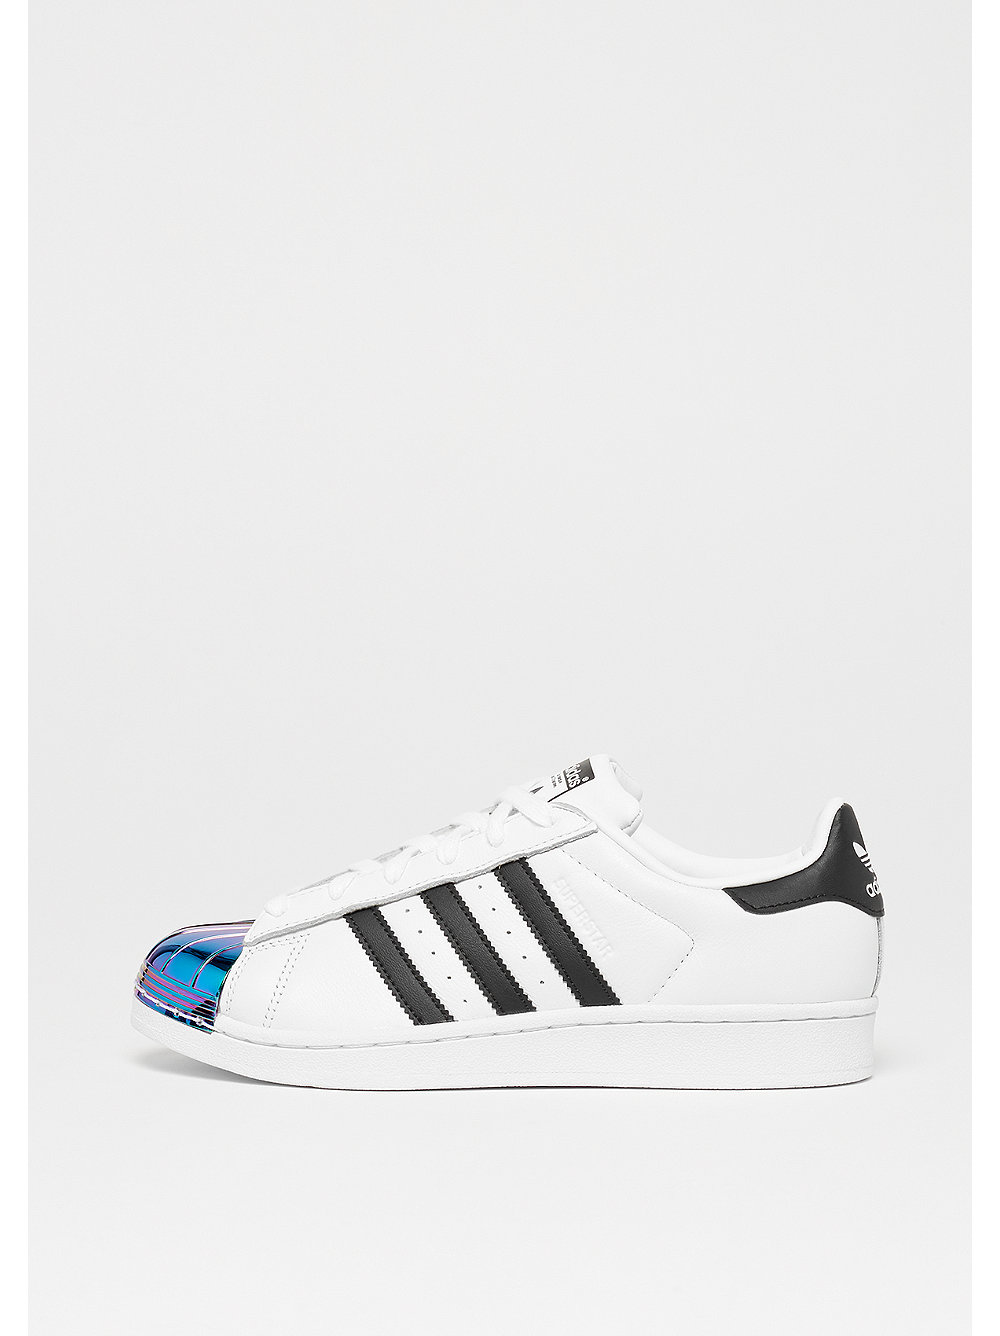 adidas Superstar Metal Toe white-core black-supplier colour